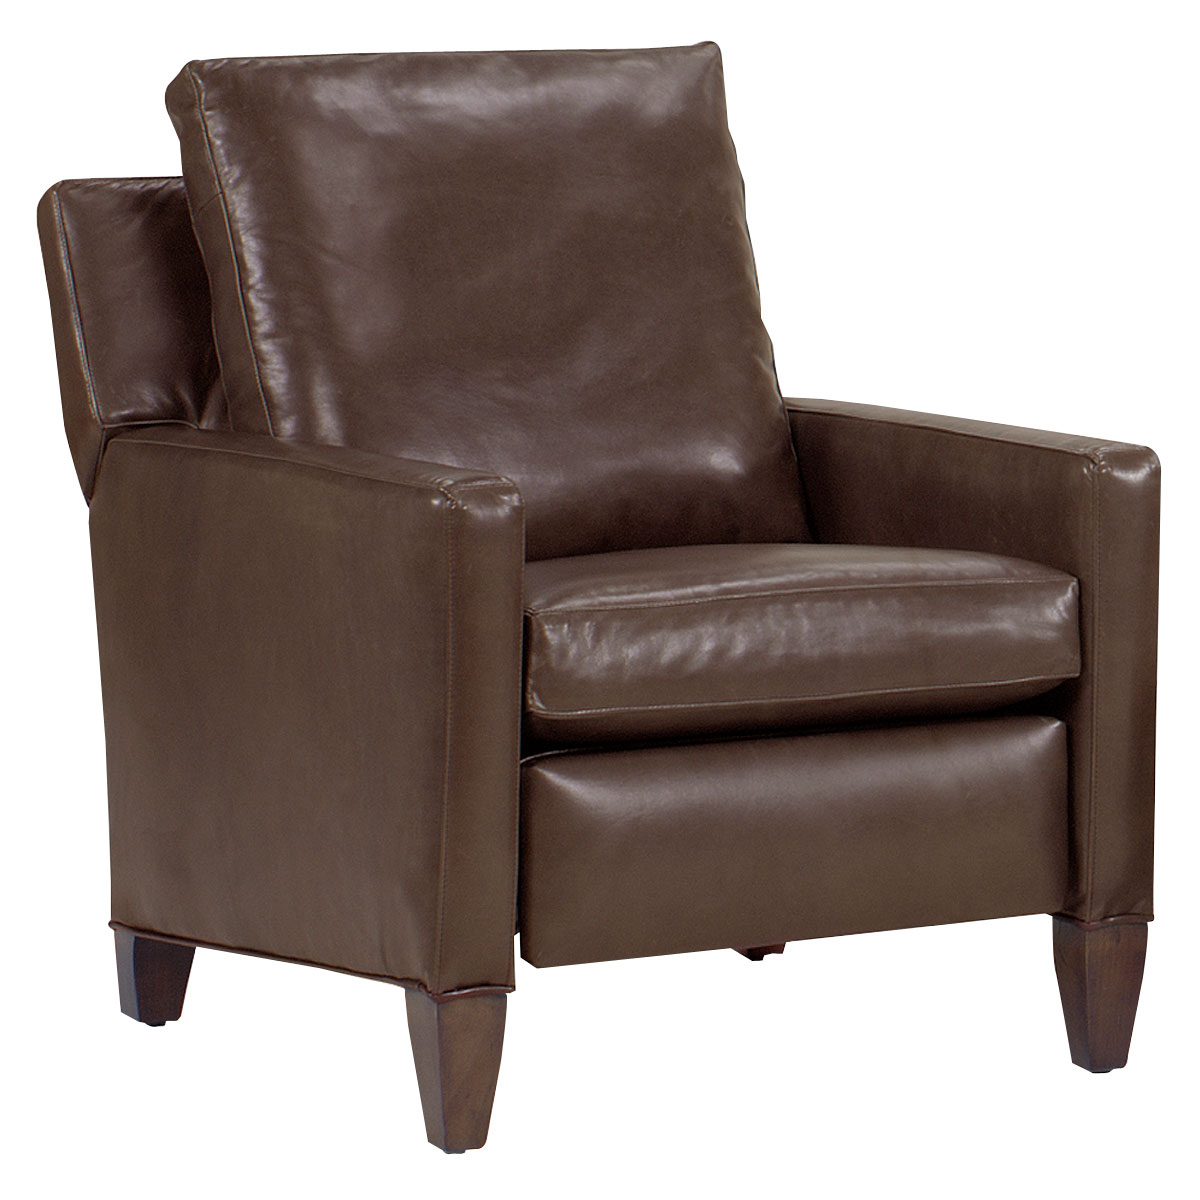 Alvin Designer Style Tall Leg Leather Reclining Chair